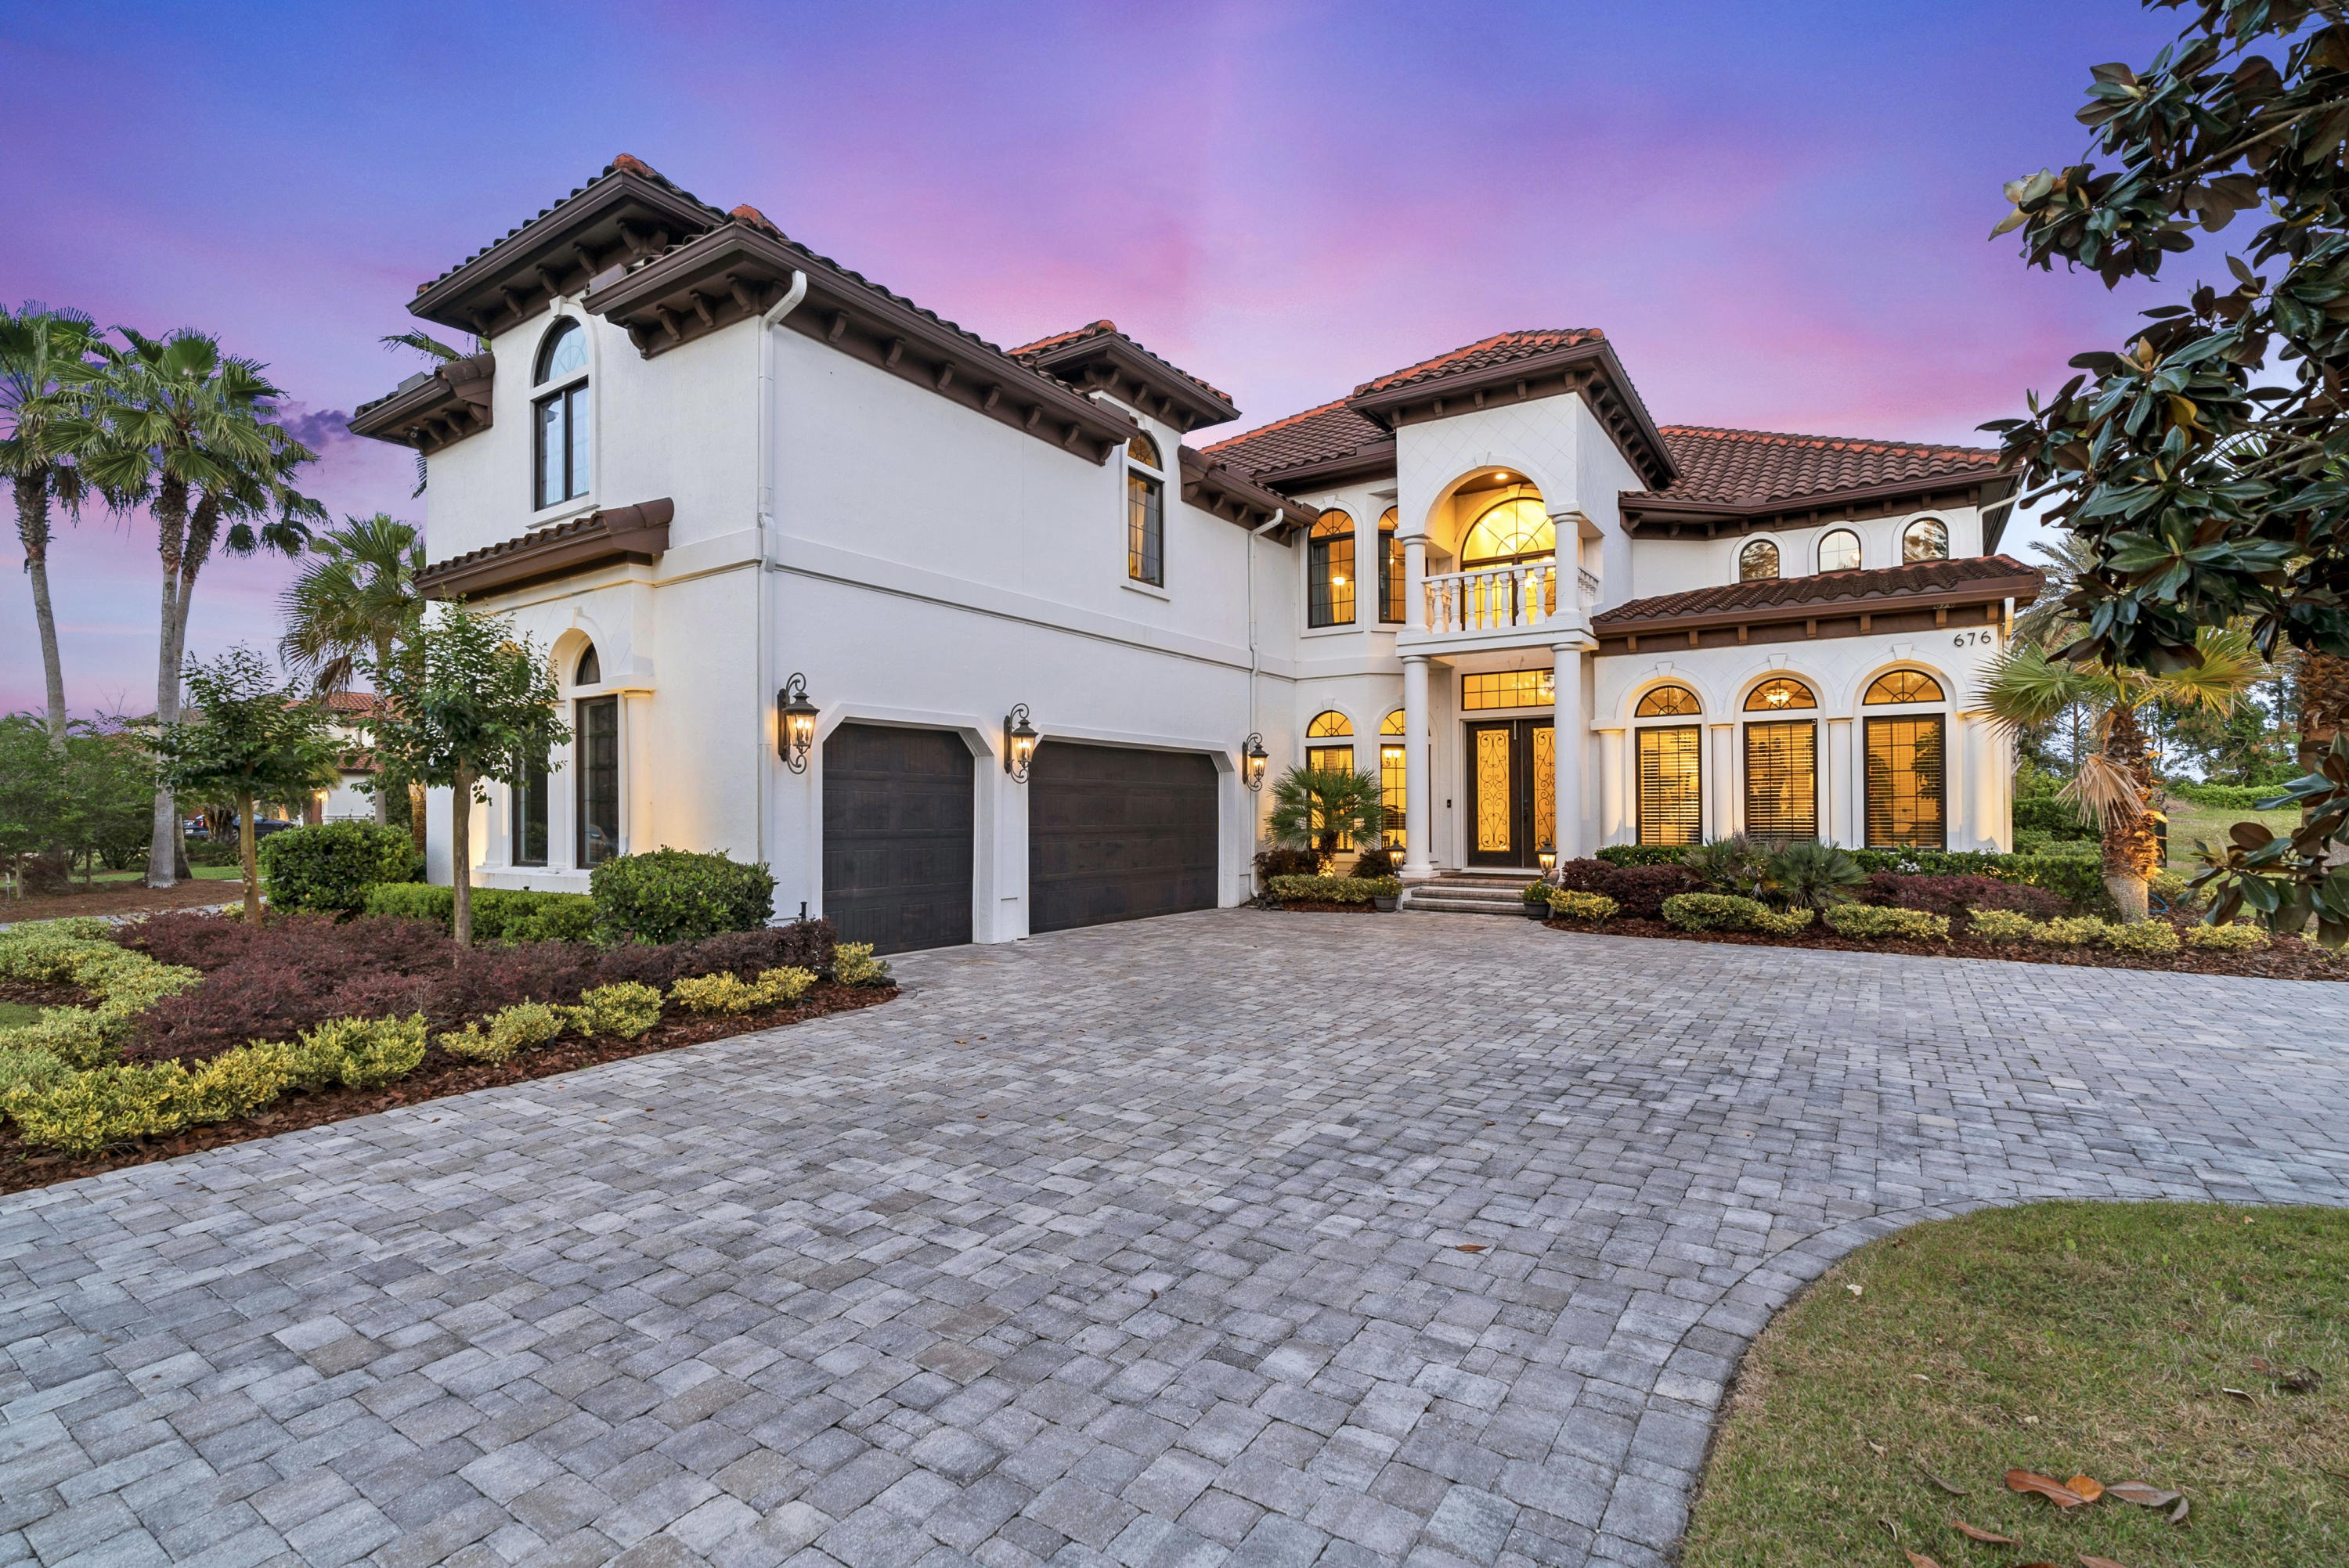 """THIS IS YOUR DREAM HOME! Breath taking sunrise & golf course views from this 5 bed/ 6 bath custom designed pool home. Luxuries Include: Grand foyer accented by a spiral staircase, formal dining rm, office w/ French doors & coffered ceiling. Rich scraped wood floors. An epicurean's dream kitchen featuring Wolf & Subzero appliances, designer cabinets w/ Viatera quartz countertops, hammered copper deep sink & hood vent. 1st & 2nd level master suites.The main level boast a Mediterranean styled bath & luxury shower. Lg. coffered high ceiling family room. 2nd level spacious spare bedrooms. Loft /Play Rm w/ Balcony golf view. Recreation/ Theater Room.  Backyard is ultimate playground spotlighted by the custom heated salt water pool & spa. Putting green & spectacular covered detached Cabana & bar                          ADDITIONAL HOME FEATURES  """" Nearly 5400 ft.² Of Air Conditioned Space  """" CDD Bond Paid In Full. Low annual Maintenance Fee  """" Decadent Custom Designed Master Closet  """" Control 14  Home Automation  """" Whole House Generac Natural Gas Generator  """" Plygem Mira Aluminum Casement Windows  """" Over 4000 ft.² of Travertine Pool & Lanai Decking  """" Oversized Custom Spa & Pool (Heated)  """" Outdoor Summer Kitchen/Cabana With 3 Commercial Heaters.   """" Extra Storage space for Golf Cart Storage.  """" Twin WIFI Controlled Gas Accent Torches  """" Custom Built Cabana & Entertainment Space that can seat up to 20.   Extended/ Summer Kitchen    """" 4 Hole Custom Putting Green  """" Fenced Rear Yard  """" Heavy Glass Door Sliders  """" 3 Tankless Water Heaters  """" 16-SEER Comfort 2-Speed HVACS  """" Remote Shade Control Blinds  """" Scraped Harwood & Custom Tile Flooring  """" Open Cell Foam Insulation  """" 300 Foot Deep Artesian Well For irrigation  """" Custom Landscape Lighting  """" Pergola With Teak Swing  """" Fire Pit  """" Long Courtyard Styled Pavered Driveway  """" 3 Car Garage With Overhead & Cabinet Storage   """"Central Vacuum System  Custom Fixtures & Lighting  """" Soft Close Designer Kitchen Drawers & Custom Cabin"""